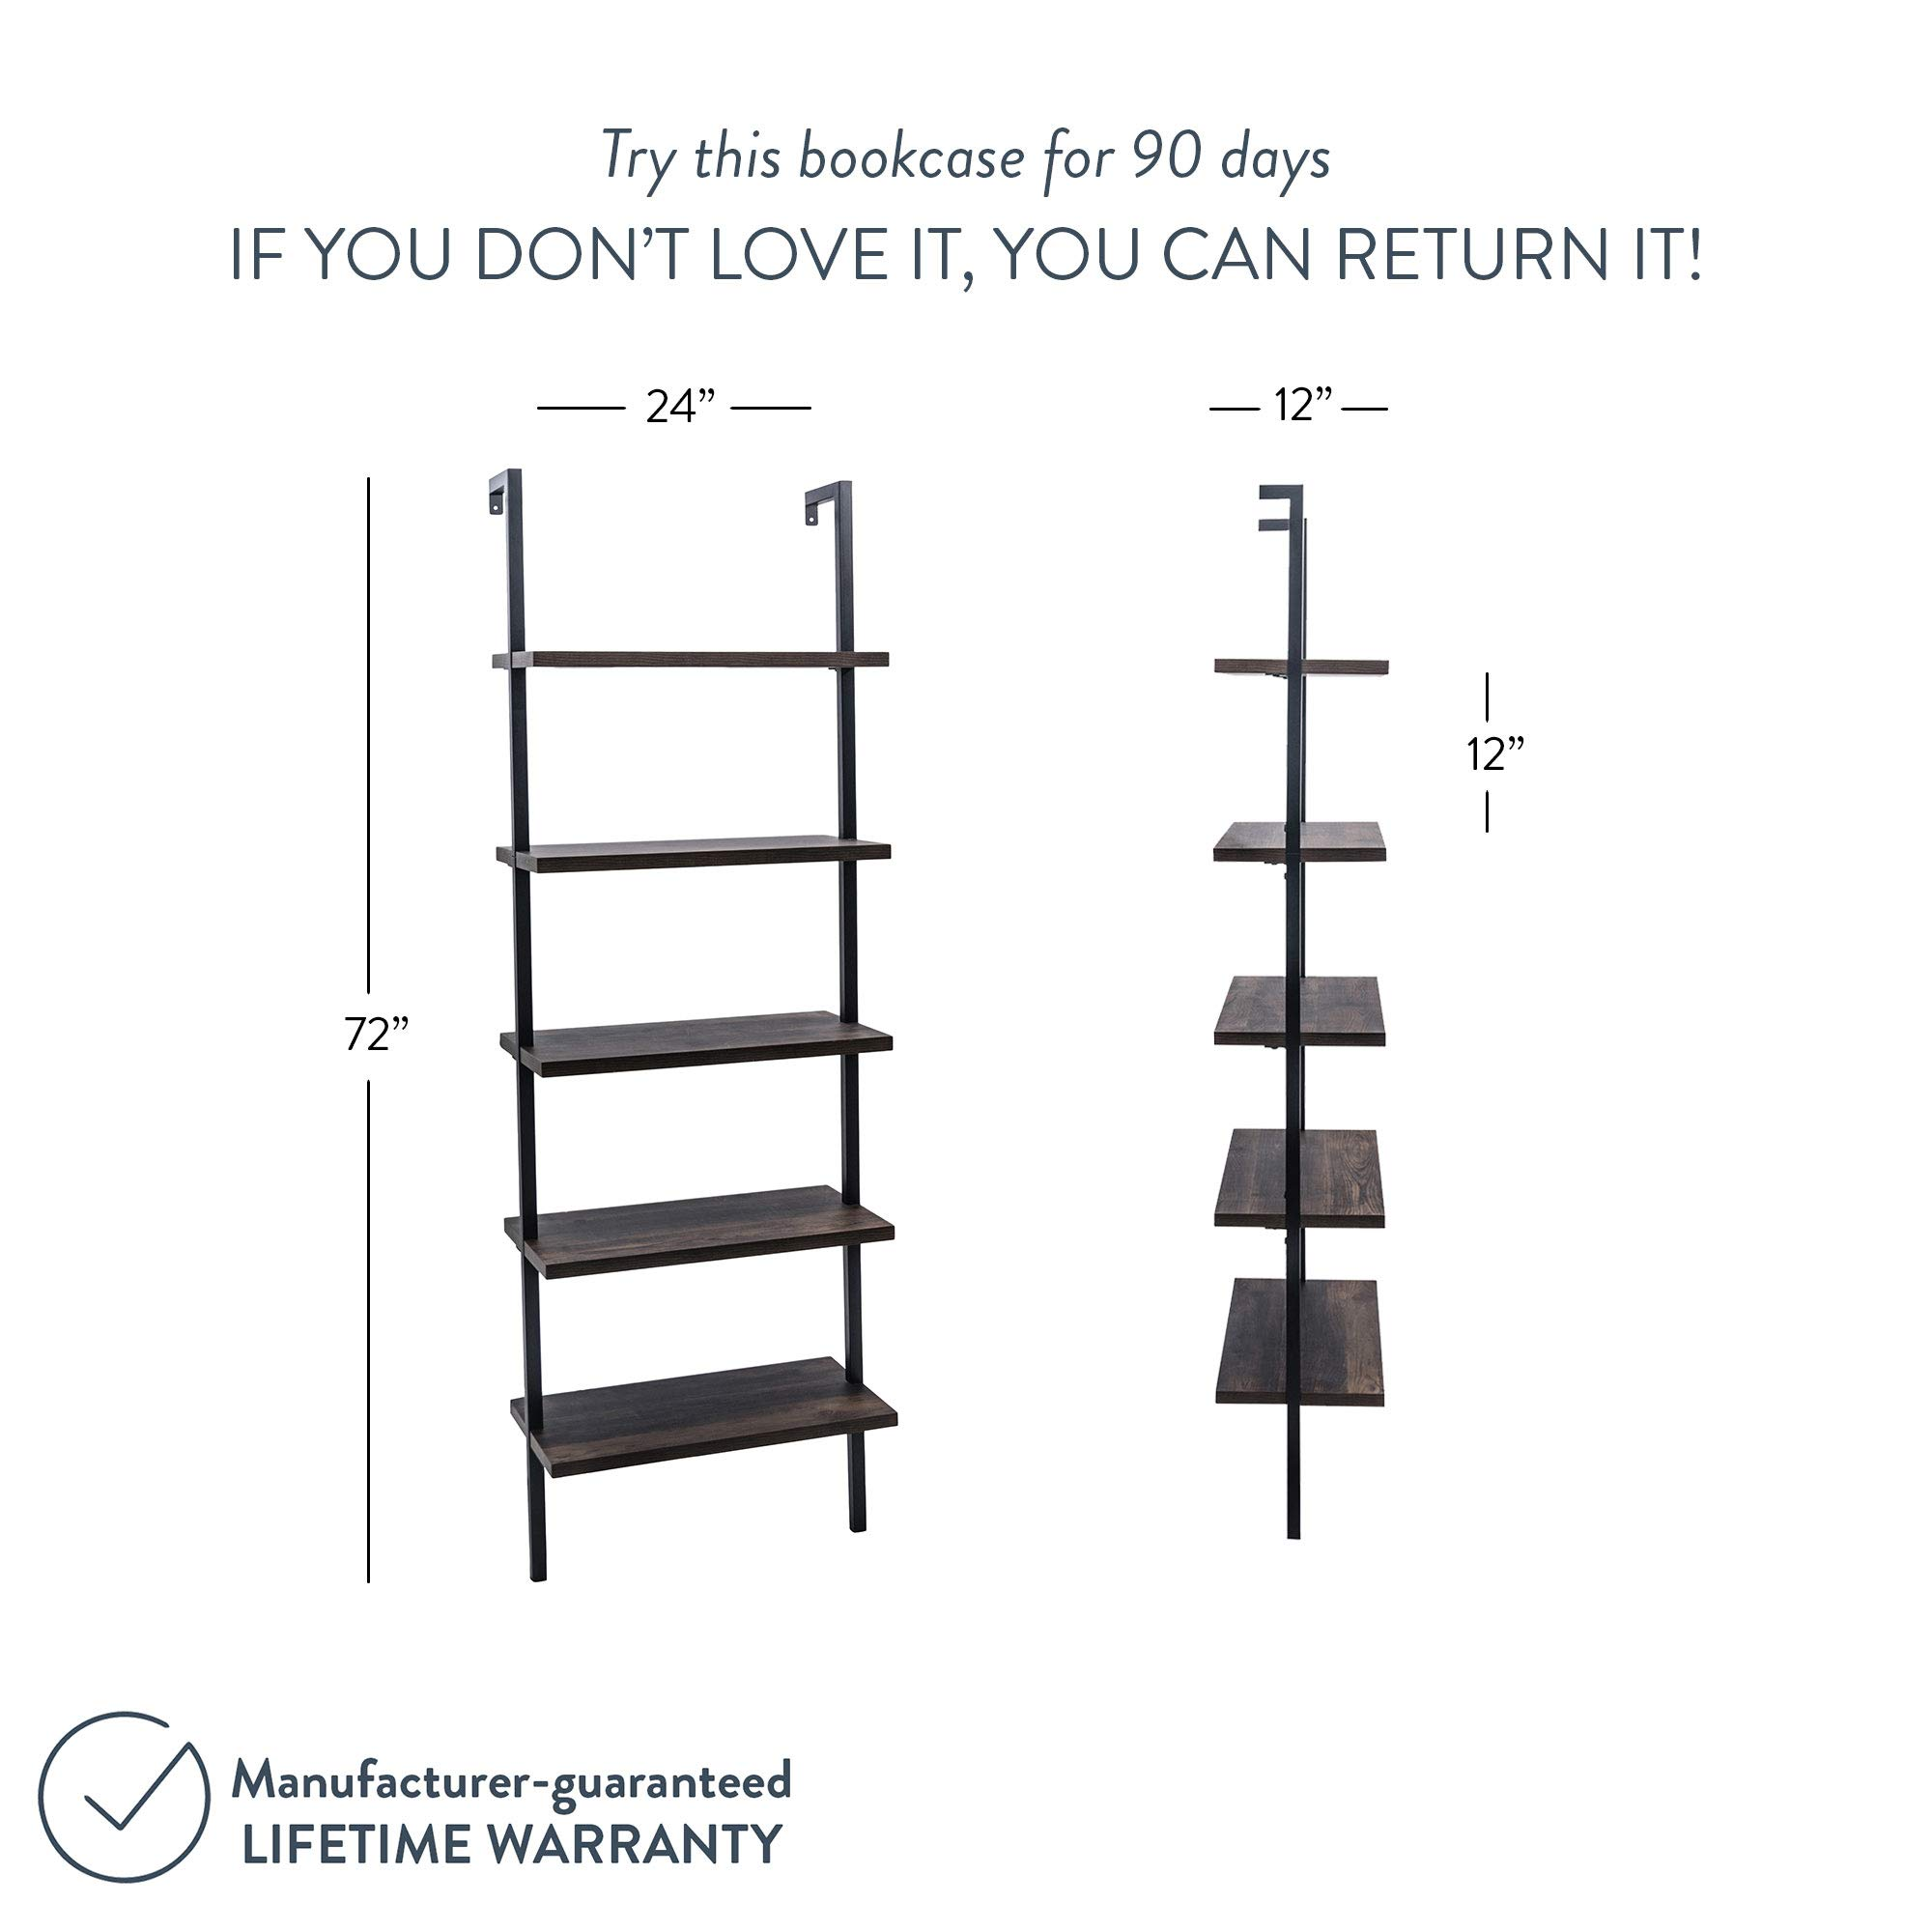 Nathan James 65501 Theo 5-Shelf Wood Ladder Bookcase with Metal Frame, Warm Walnut/Black by Nathan James (Image #8)